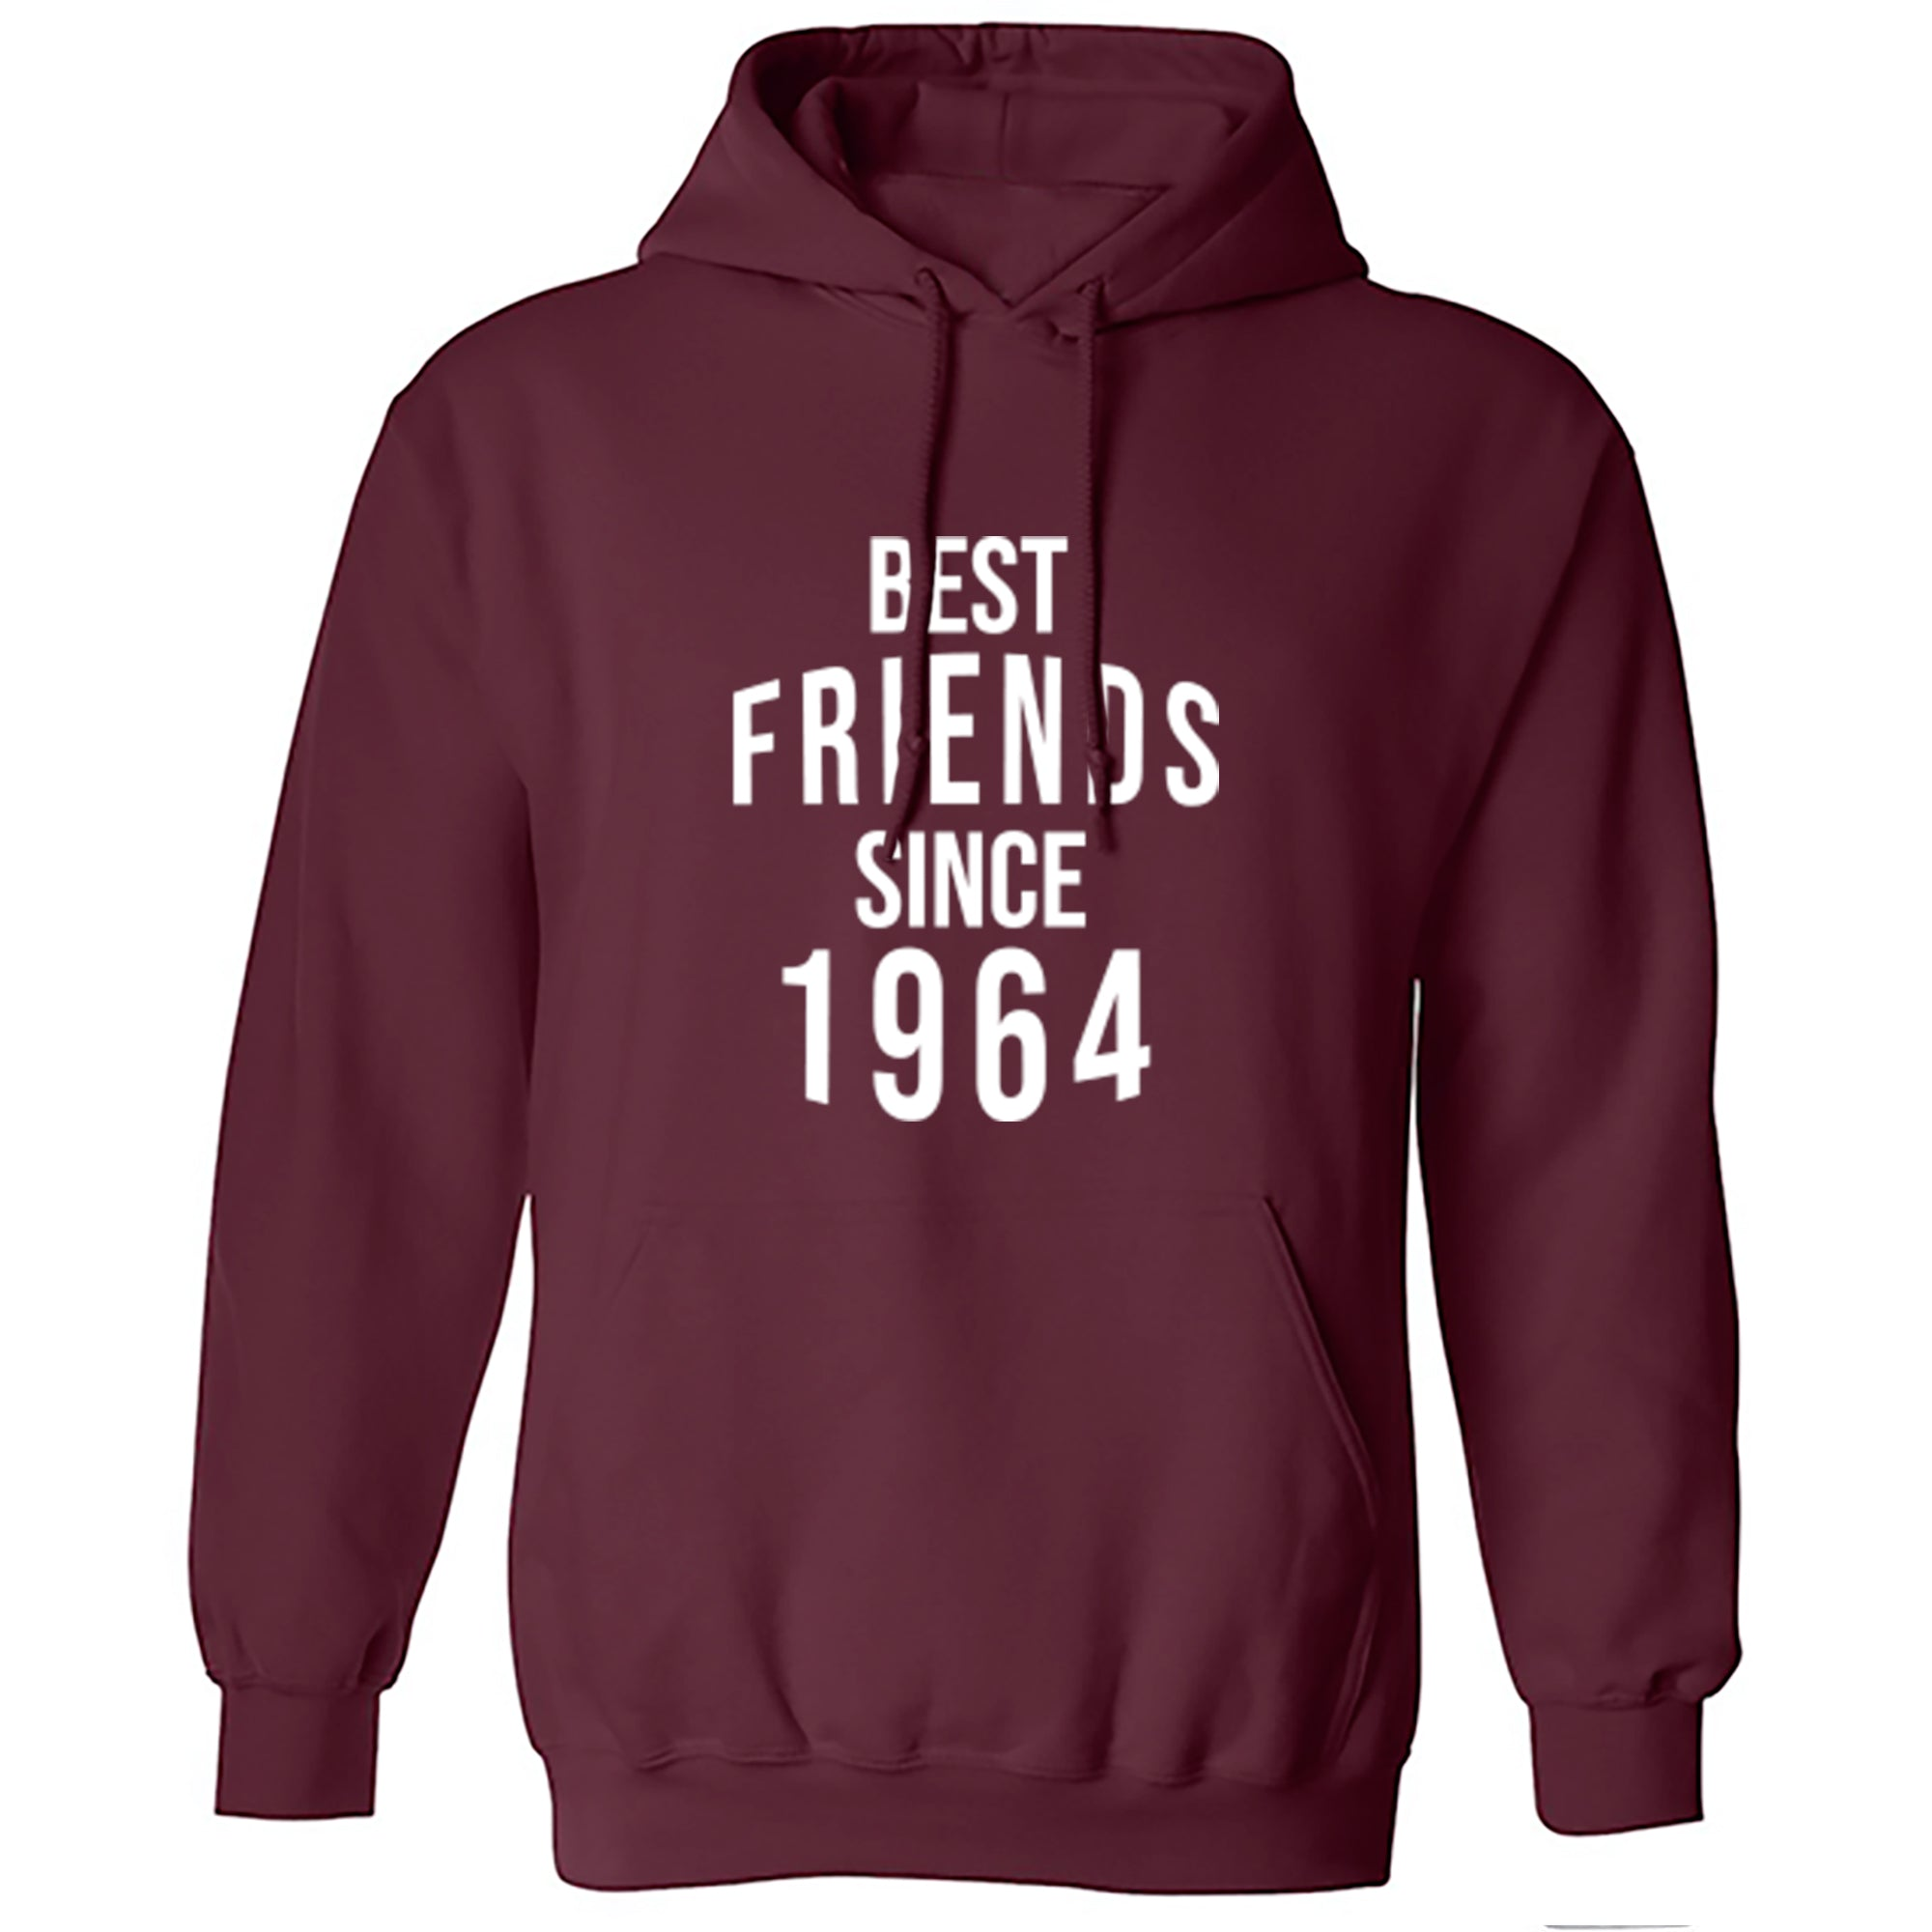 Best Friends Since 1964 Unisex Hoodie S0543 - Illustrated Identity Ltd.